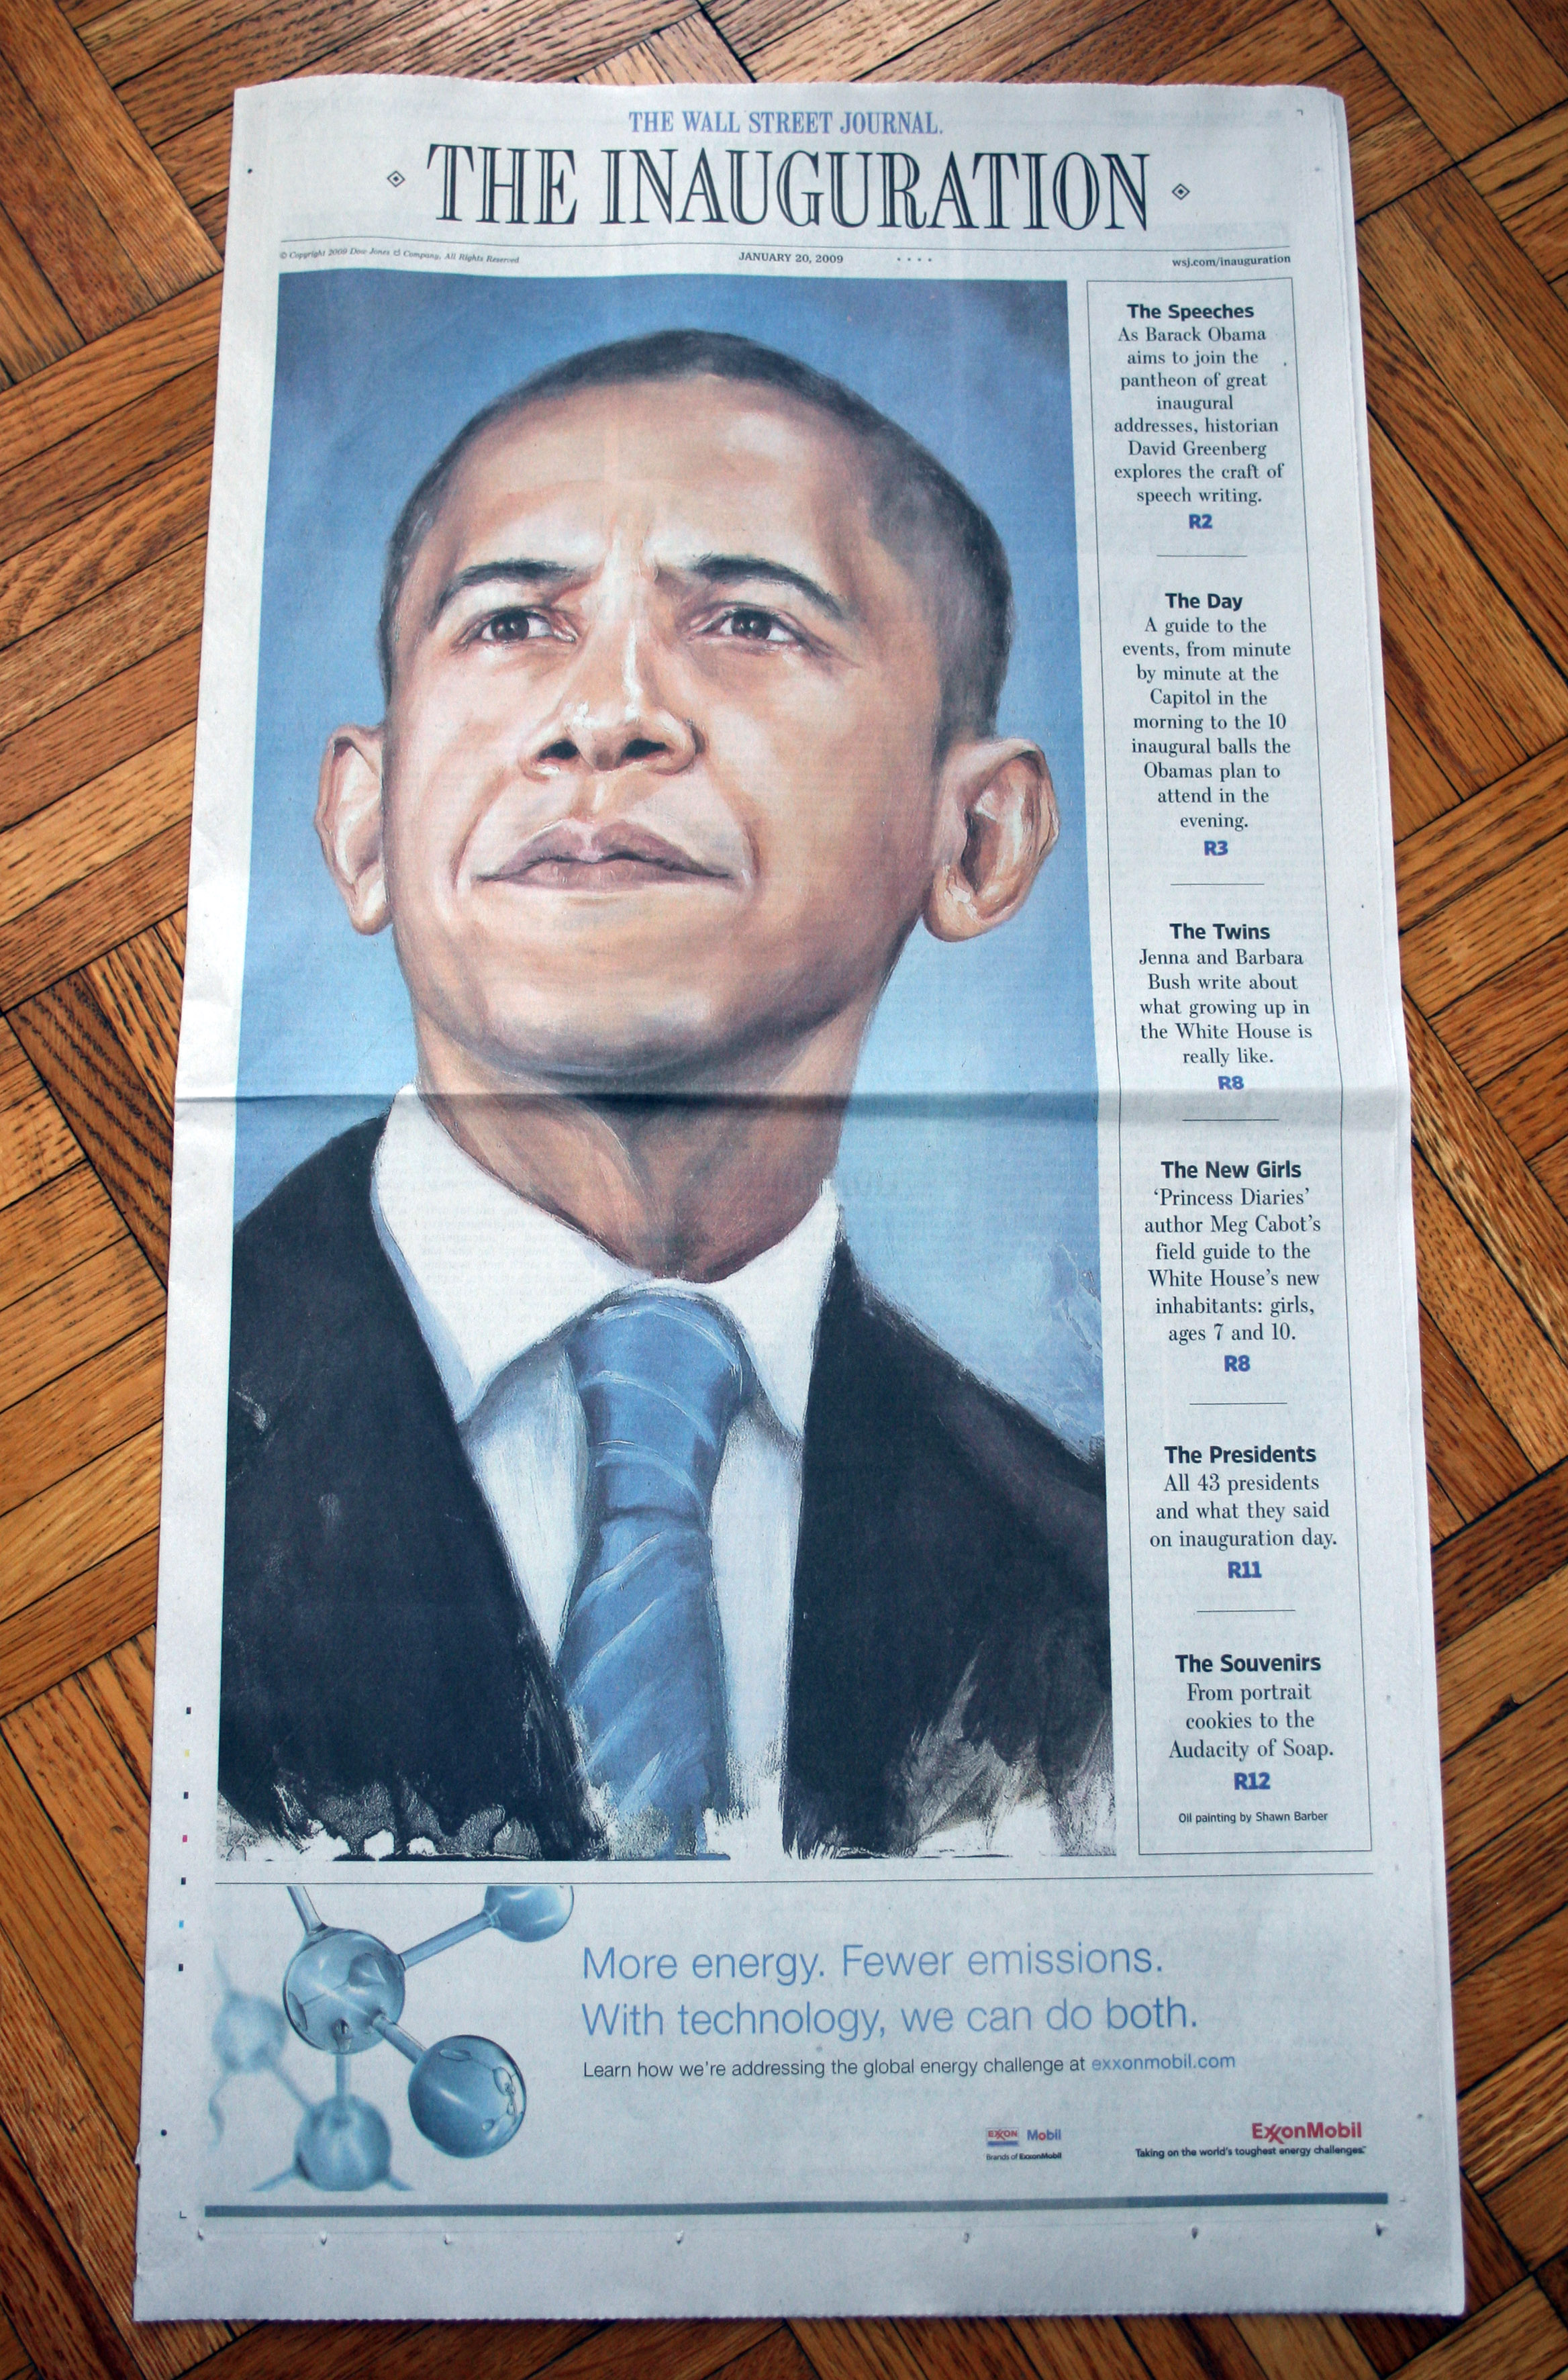 'Portrait of Barack Obama' for Wall Street Journal's Inauguration Issue, 2009